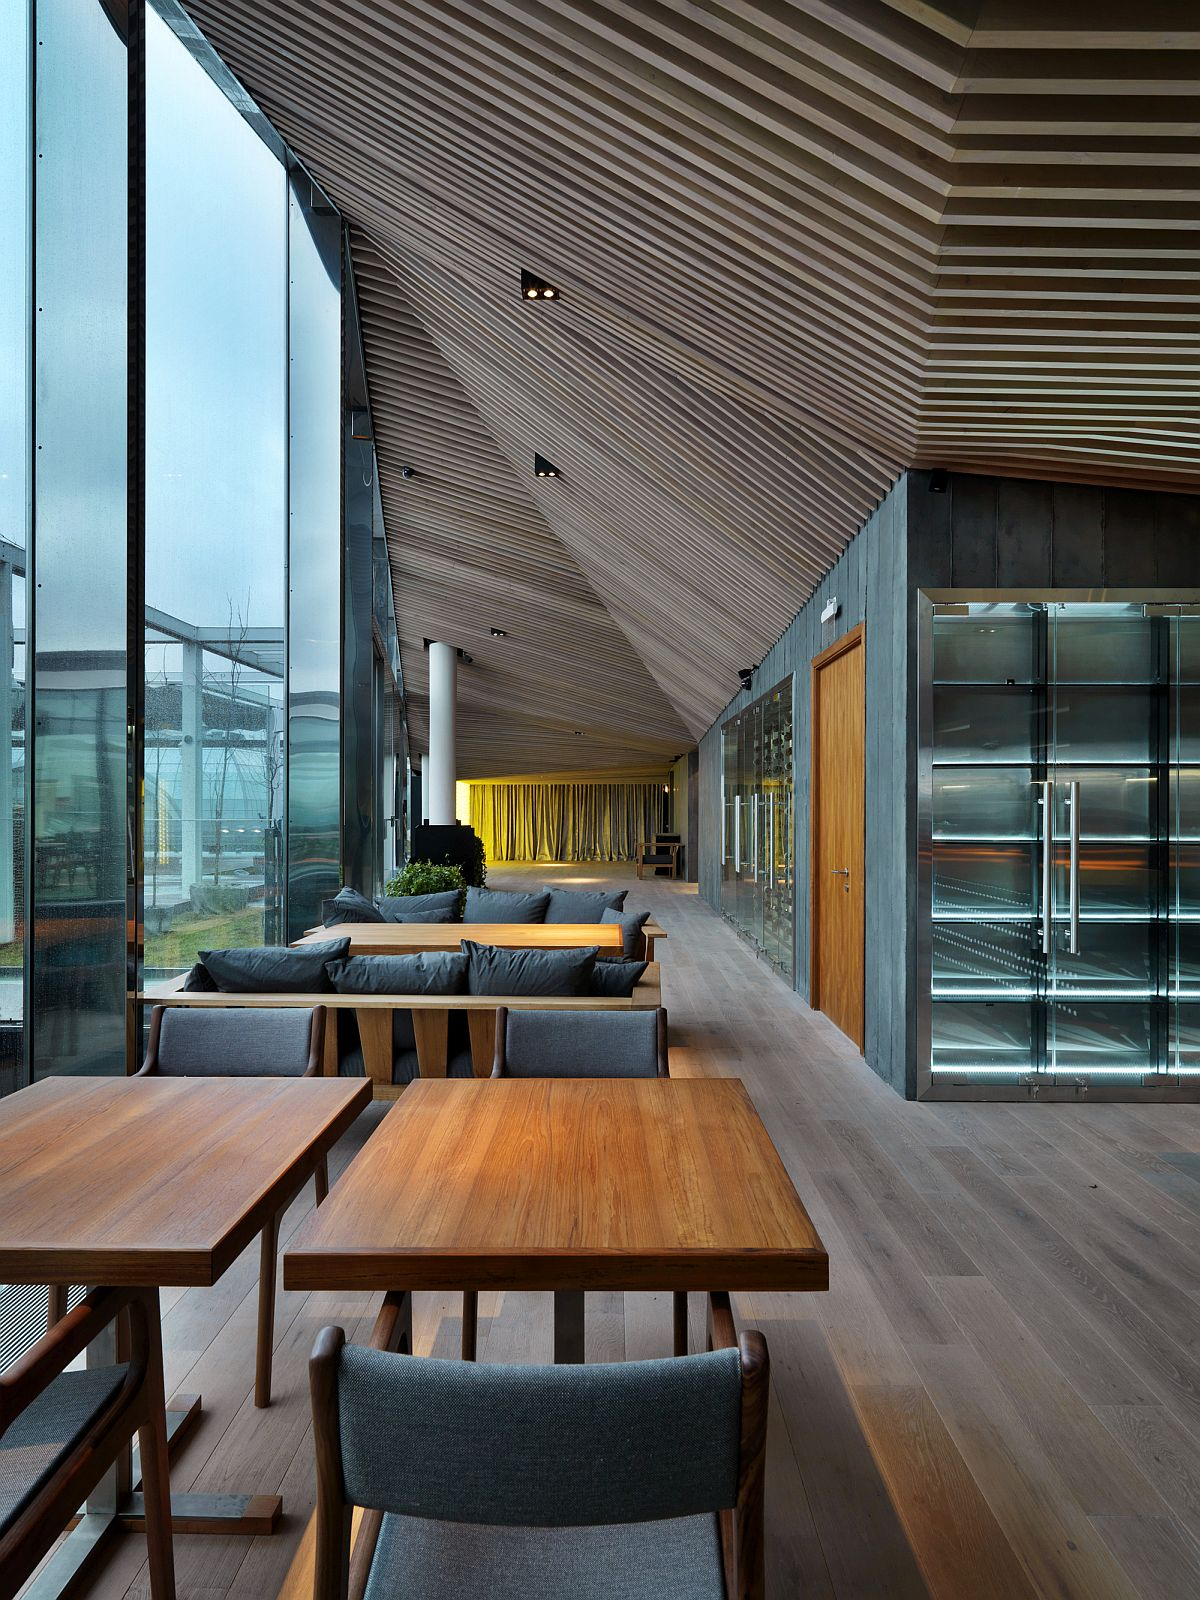 Three-dimensional geometric design of the wooden ceiling brings contrast and elegance